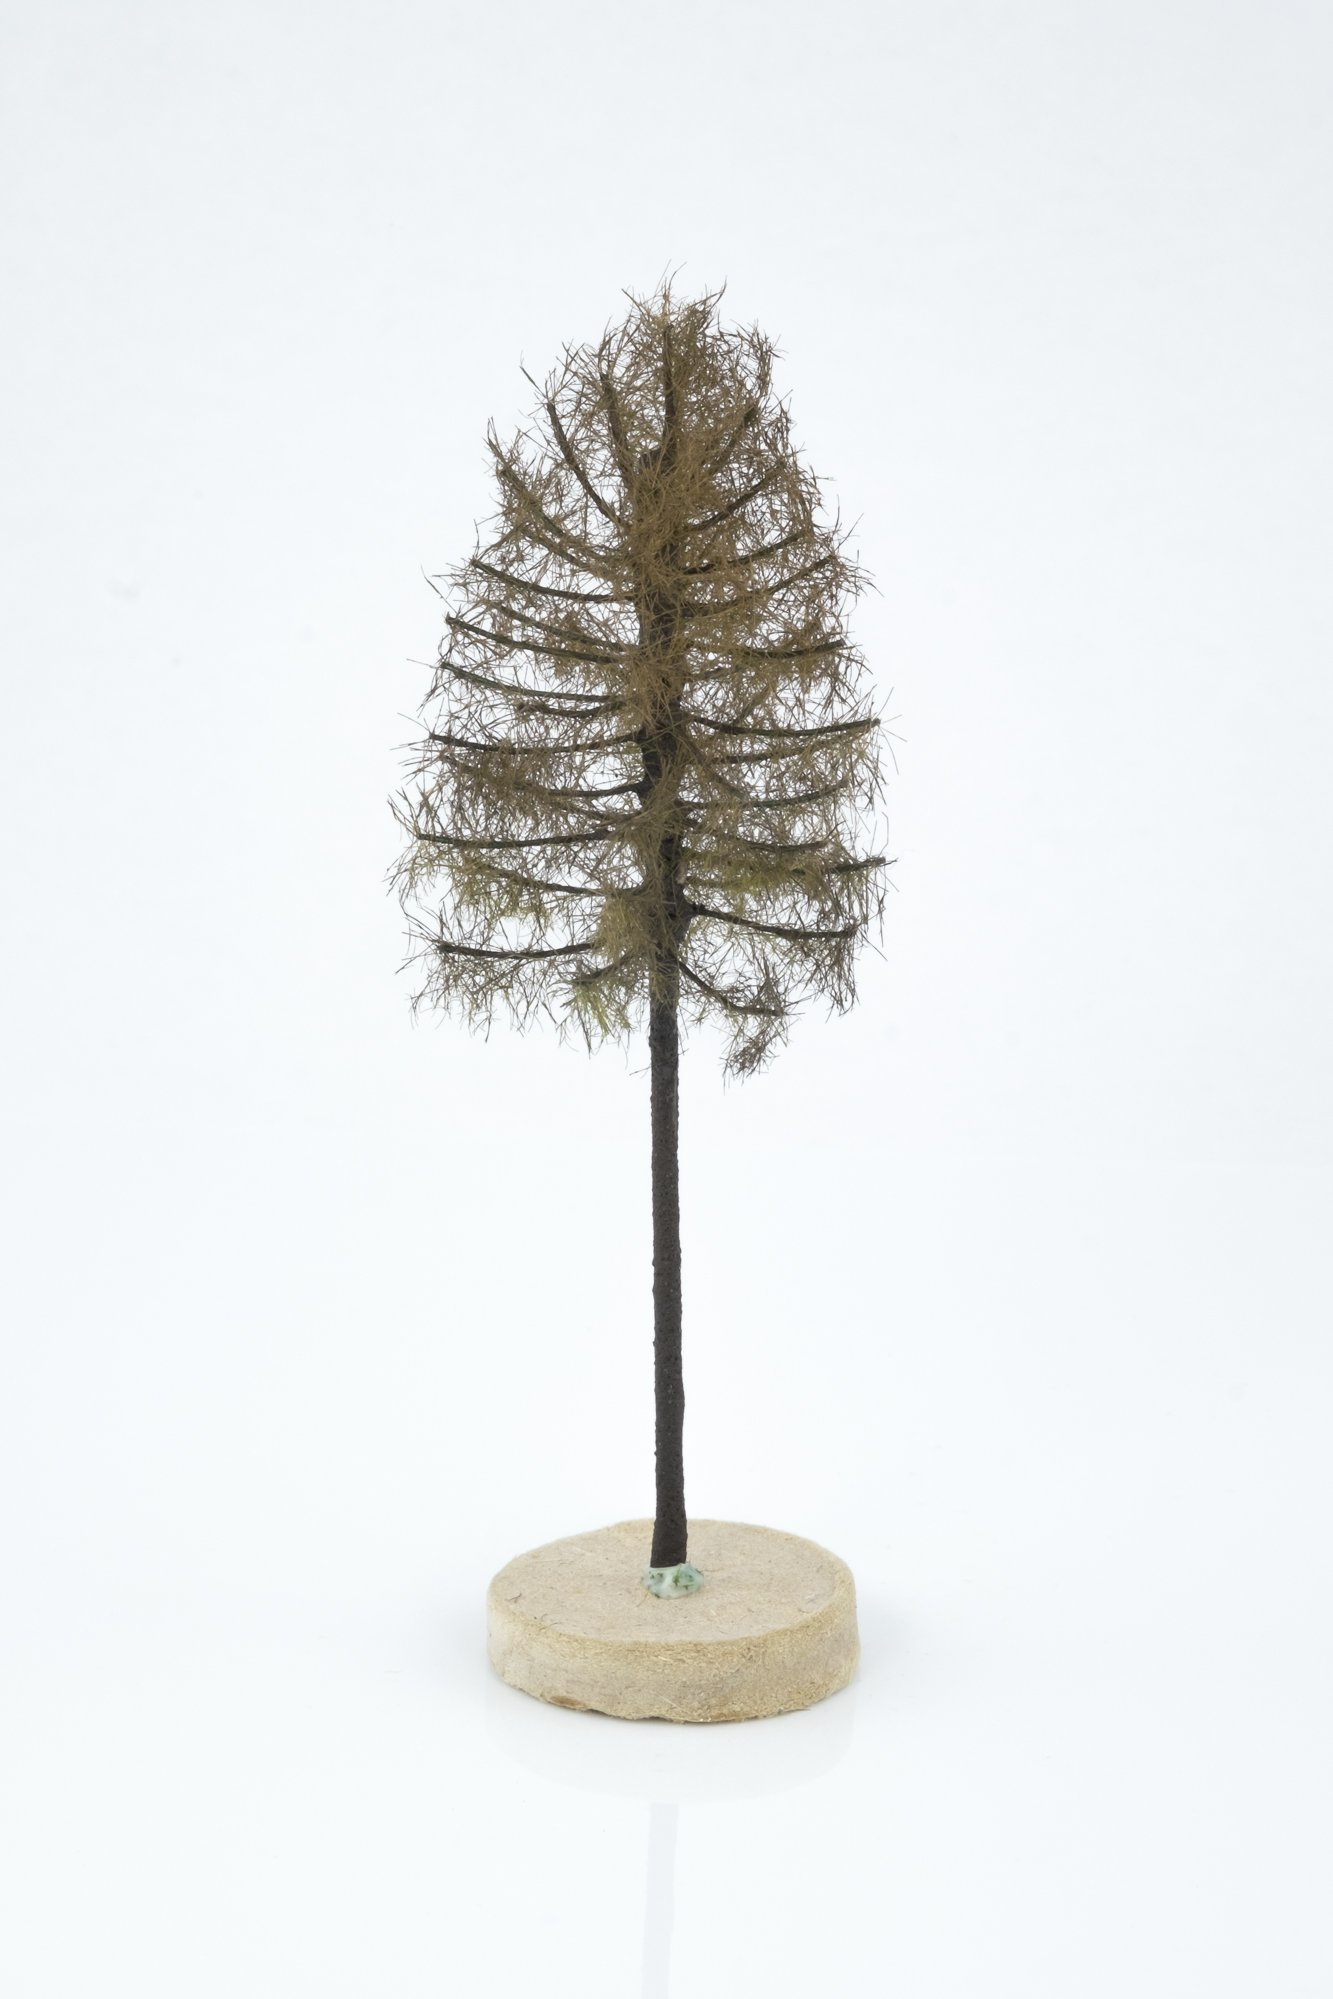 Hand-made, green, dry larch tree model. Size between 8 and 12 cm. Made from high quality model supplies by Primo Models.